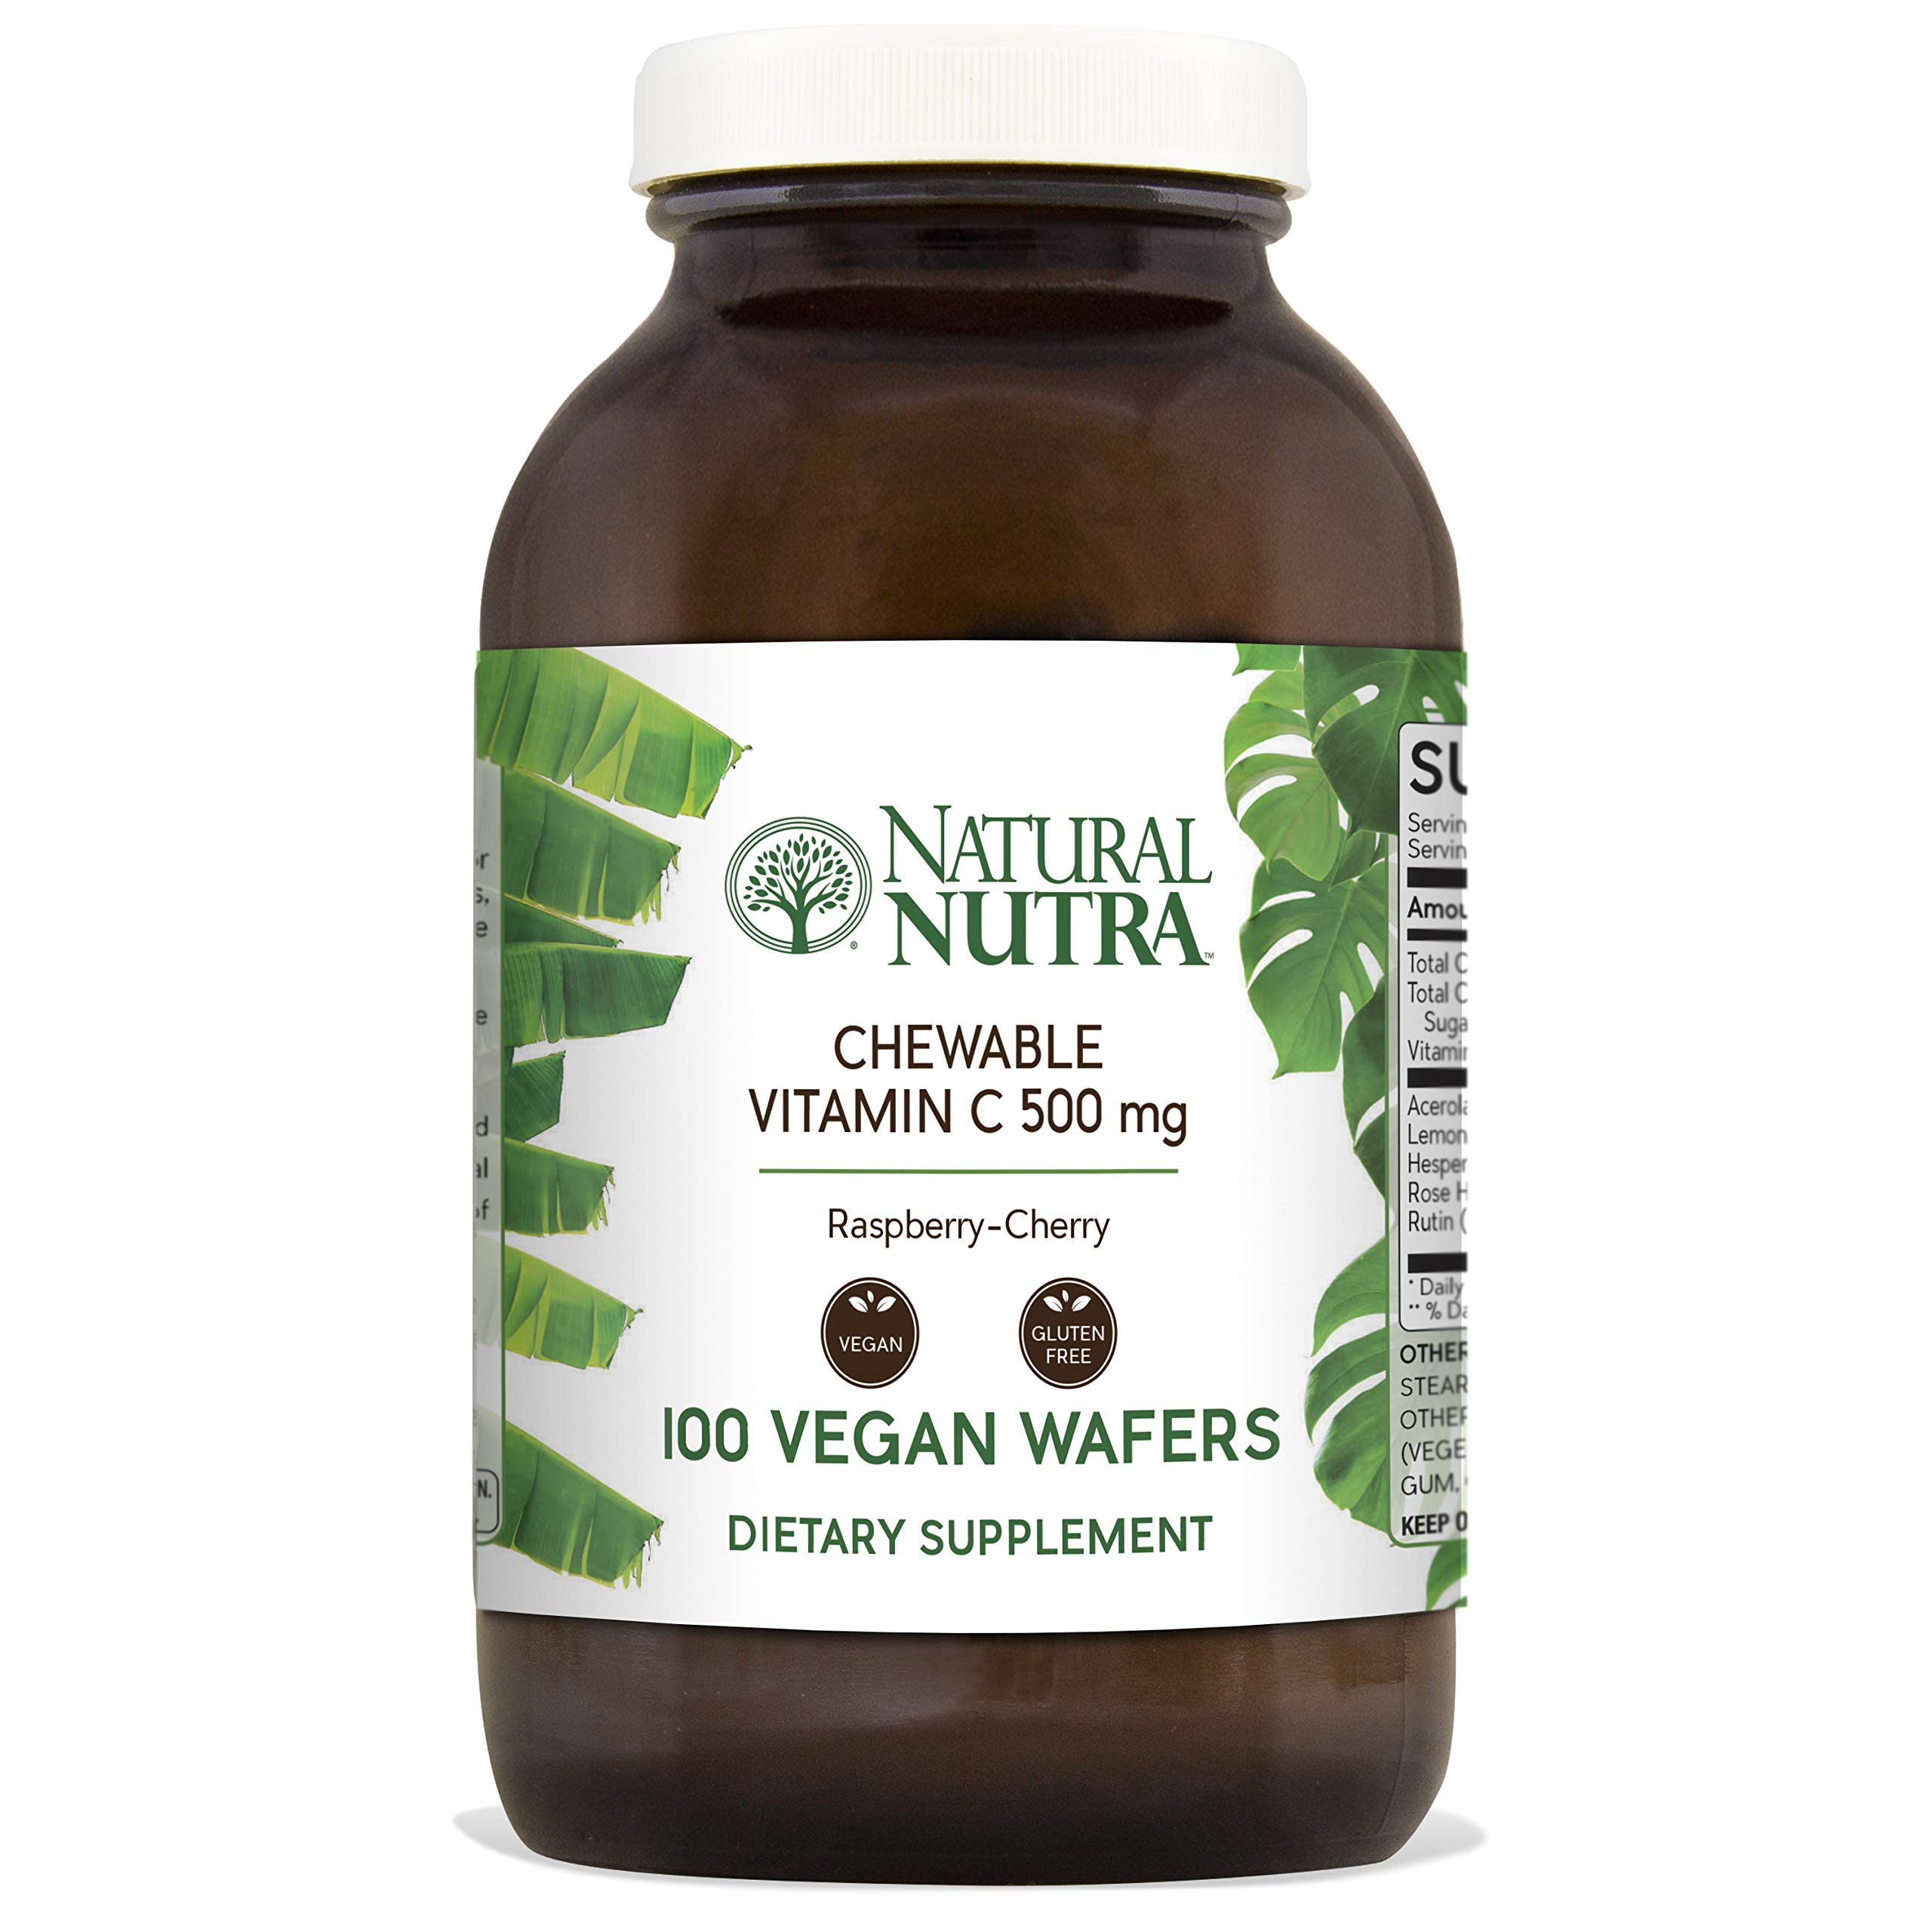 Natural Nutra Chewable Vitamin C Supplement 500 mg with Acerola, Bioflavonoids and Rosehips for Kids and Adults, High Potency, Delicious Raspberry and Cherry Flavor, 100 Vegan Wafers